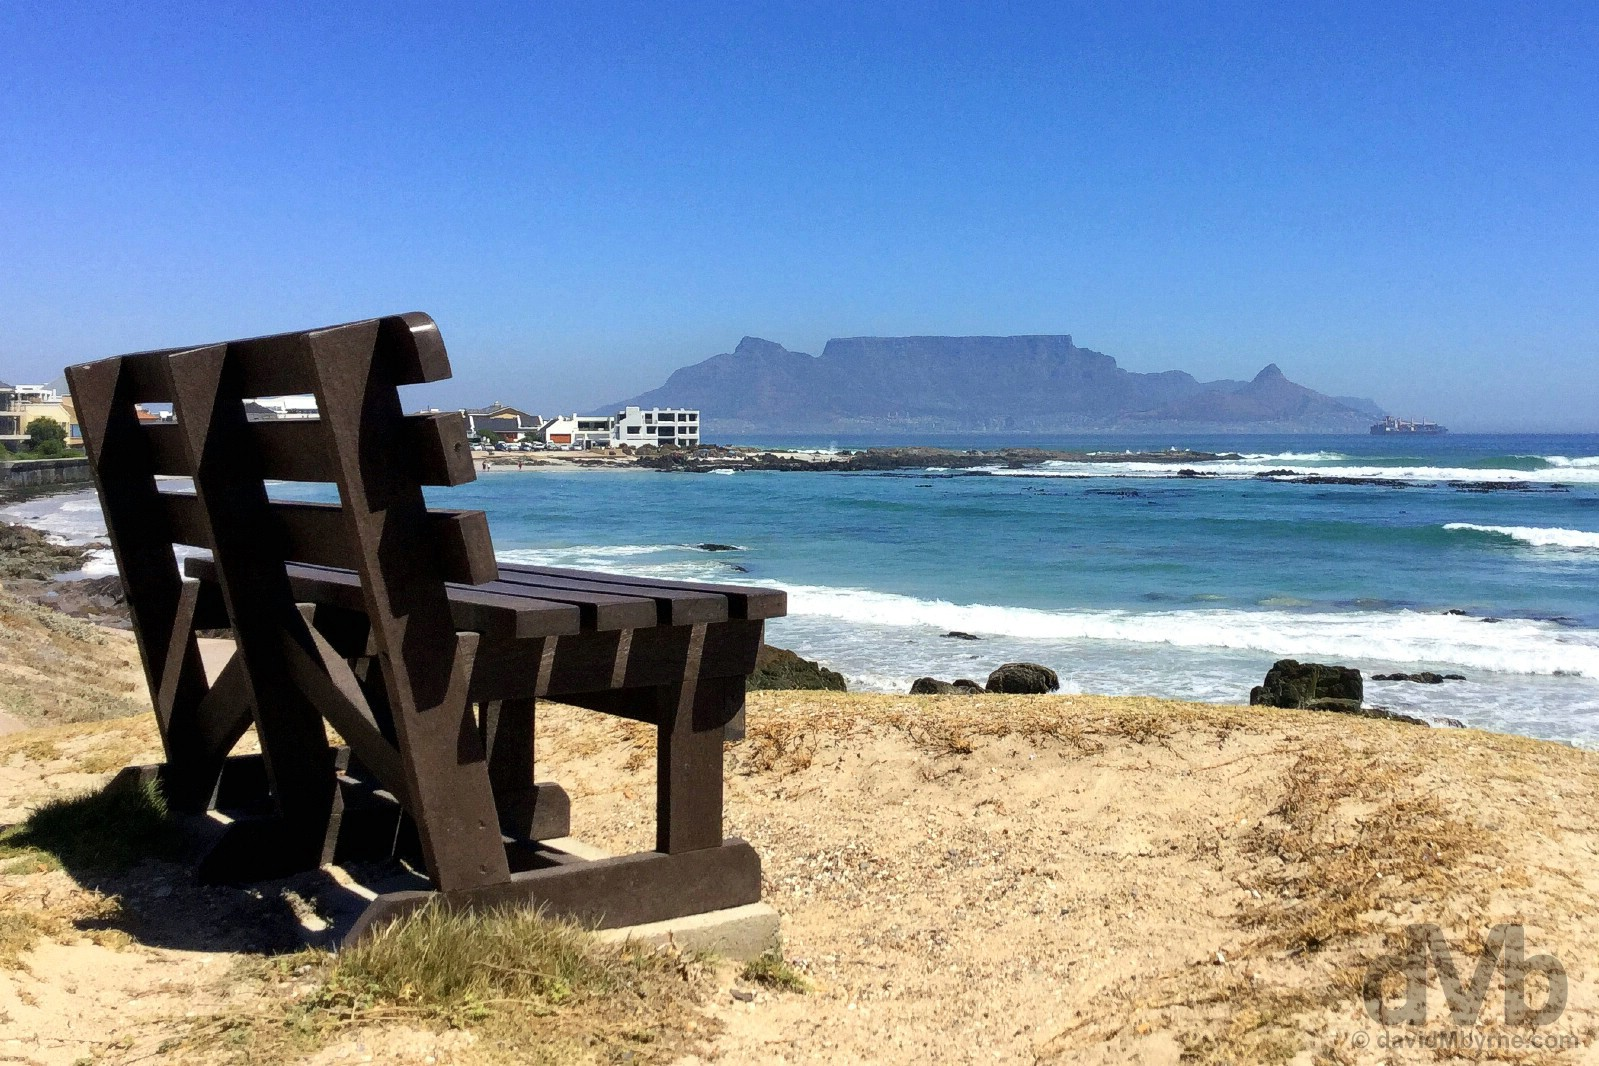 Cape Town & Table Mountain as seen from across Table Bay in Bloubergstrand. Western Cape, South Africa. February 15, 2017.